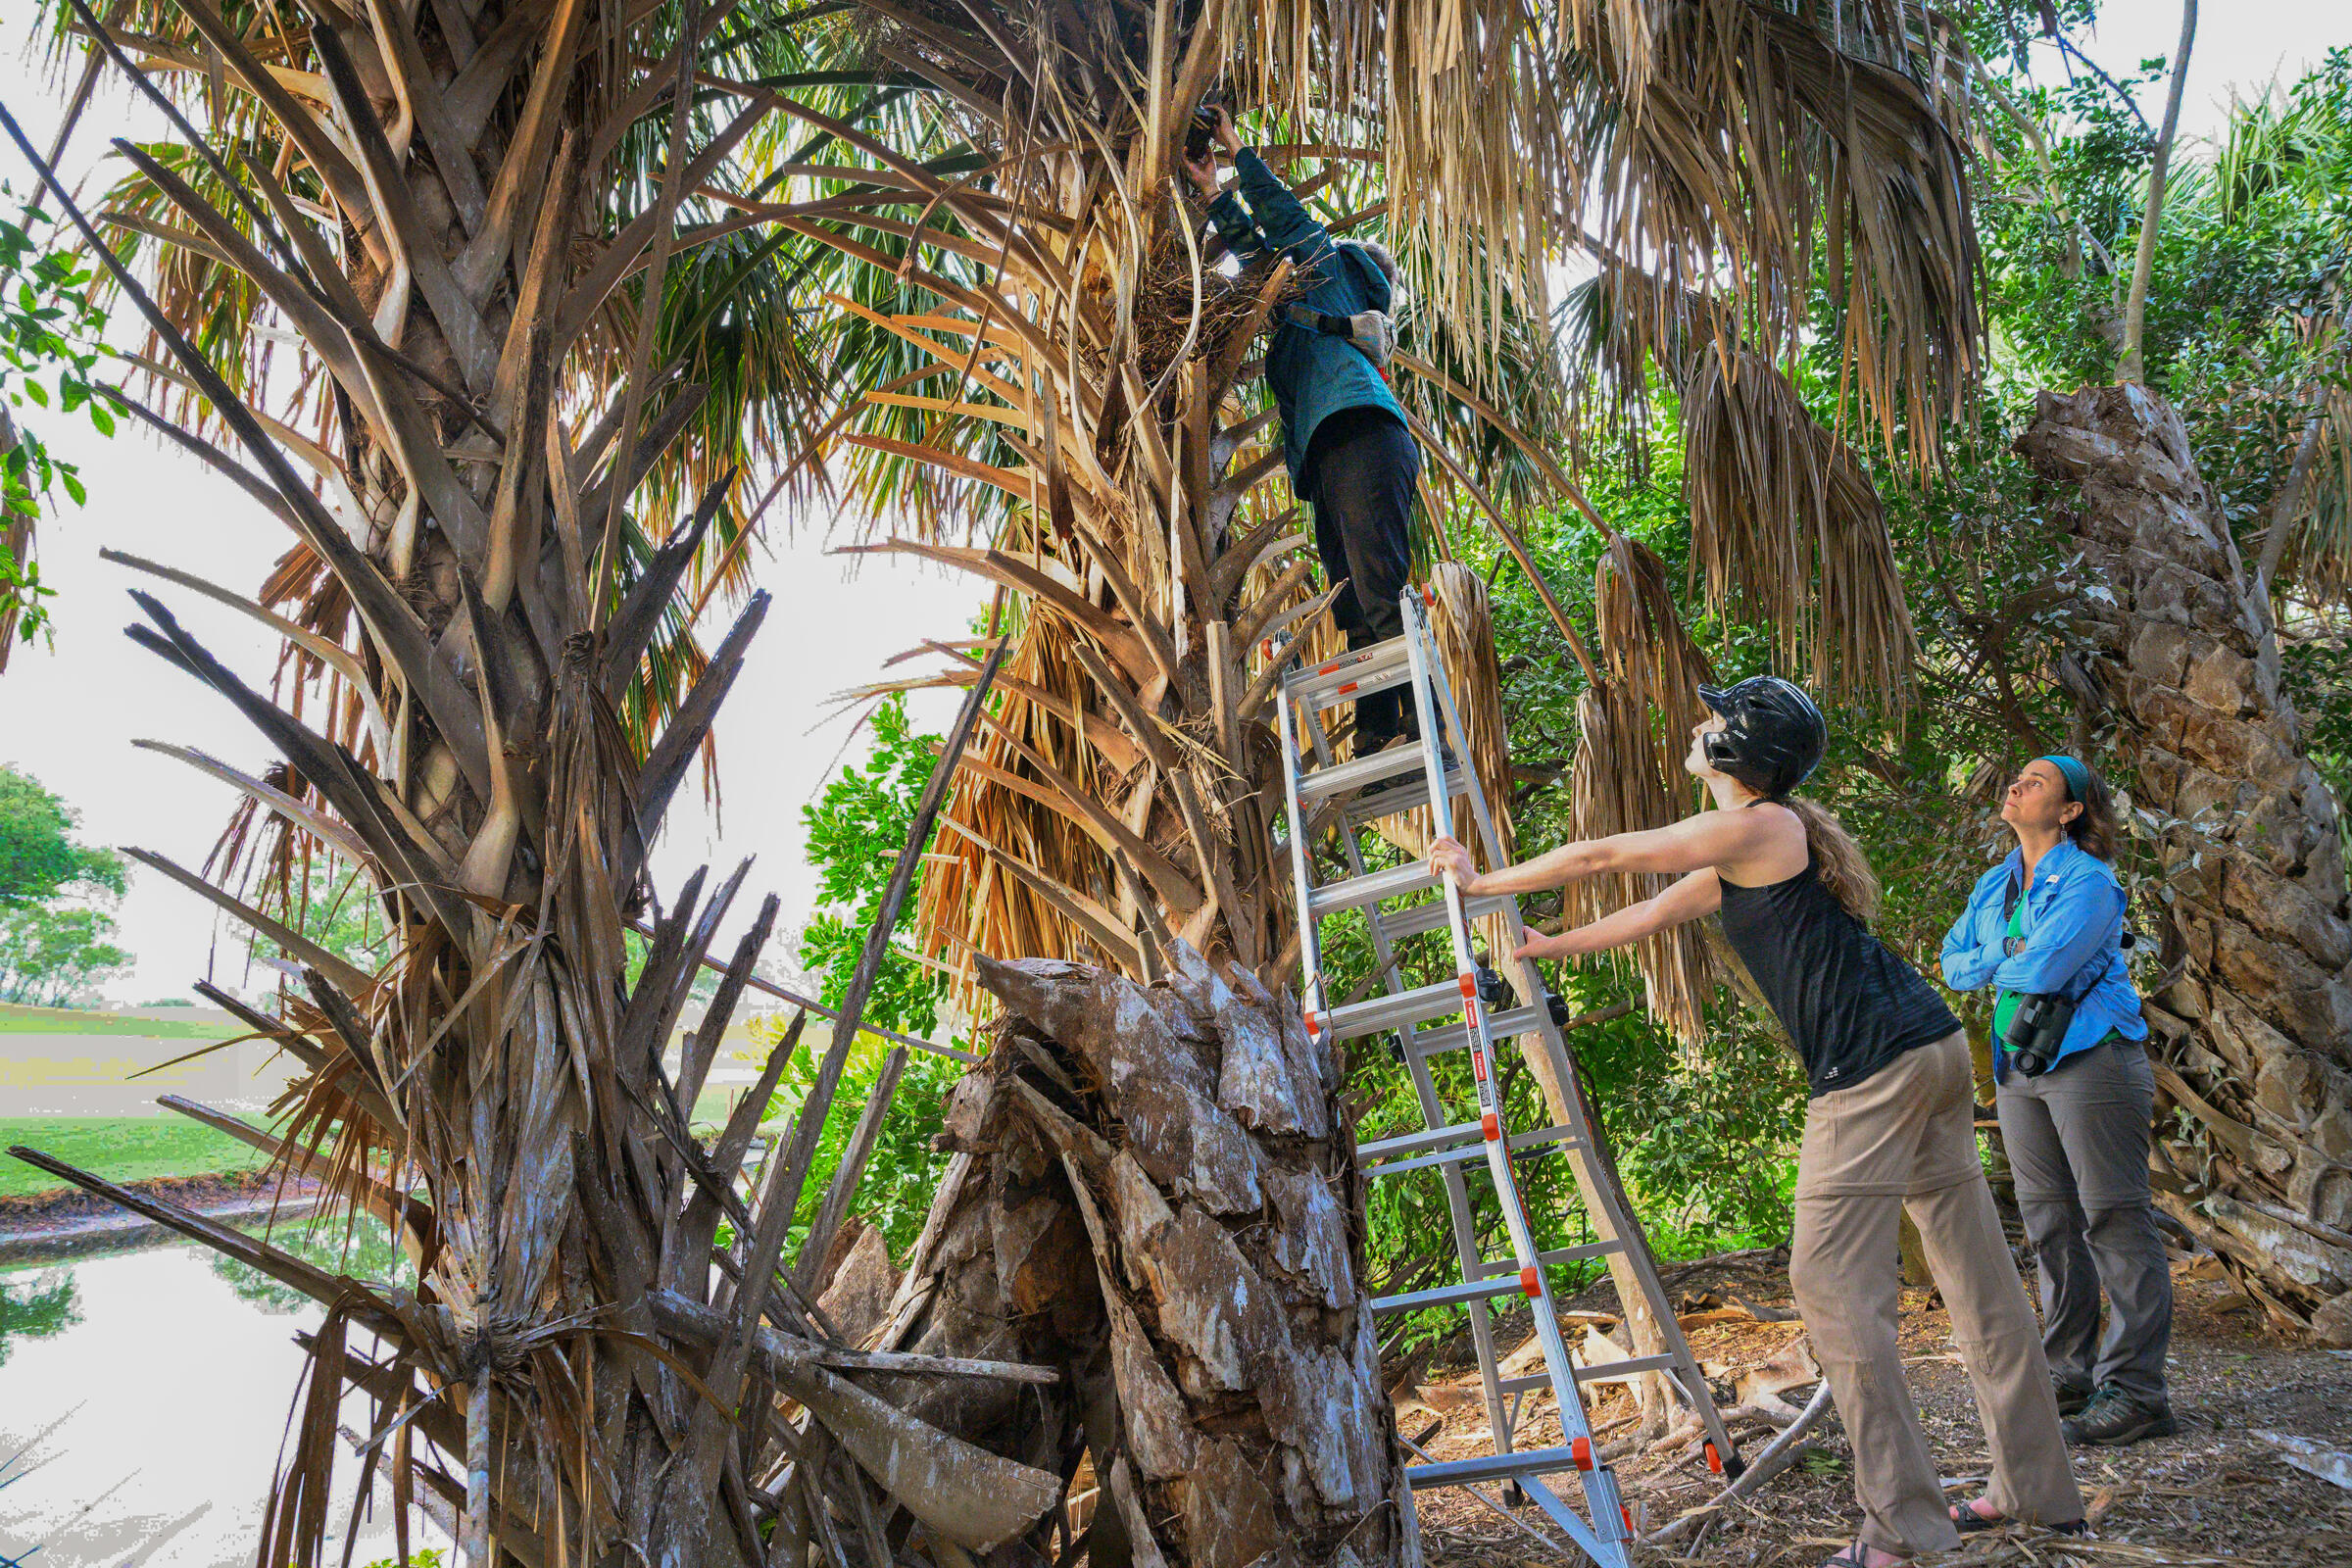 Two women are looking up at a palm tree, and another person is standing on top of a ladder with her hands outstretched above her head towards the tree. The person holding the ladder is wearing a helmet.